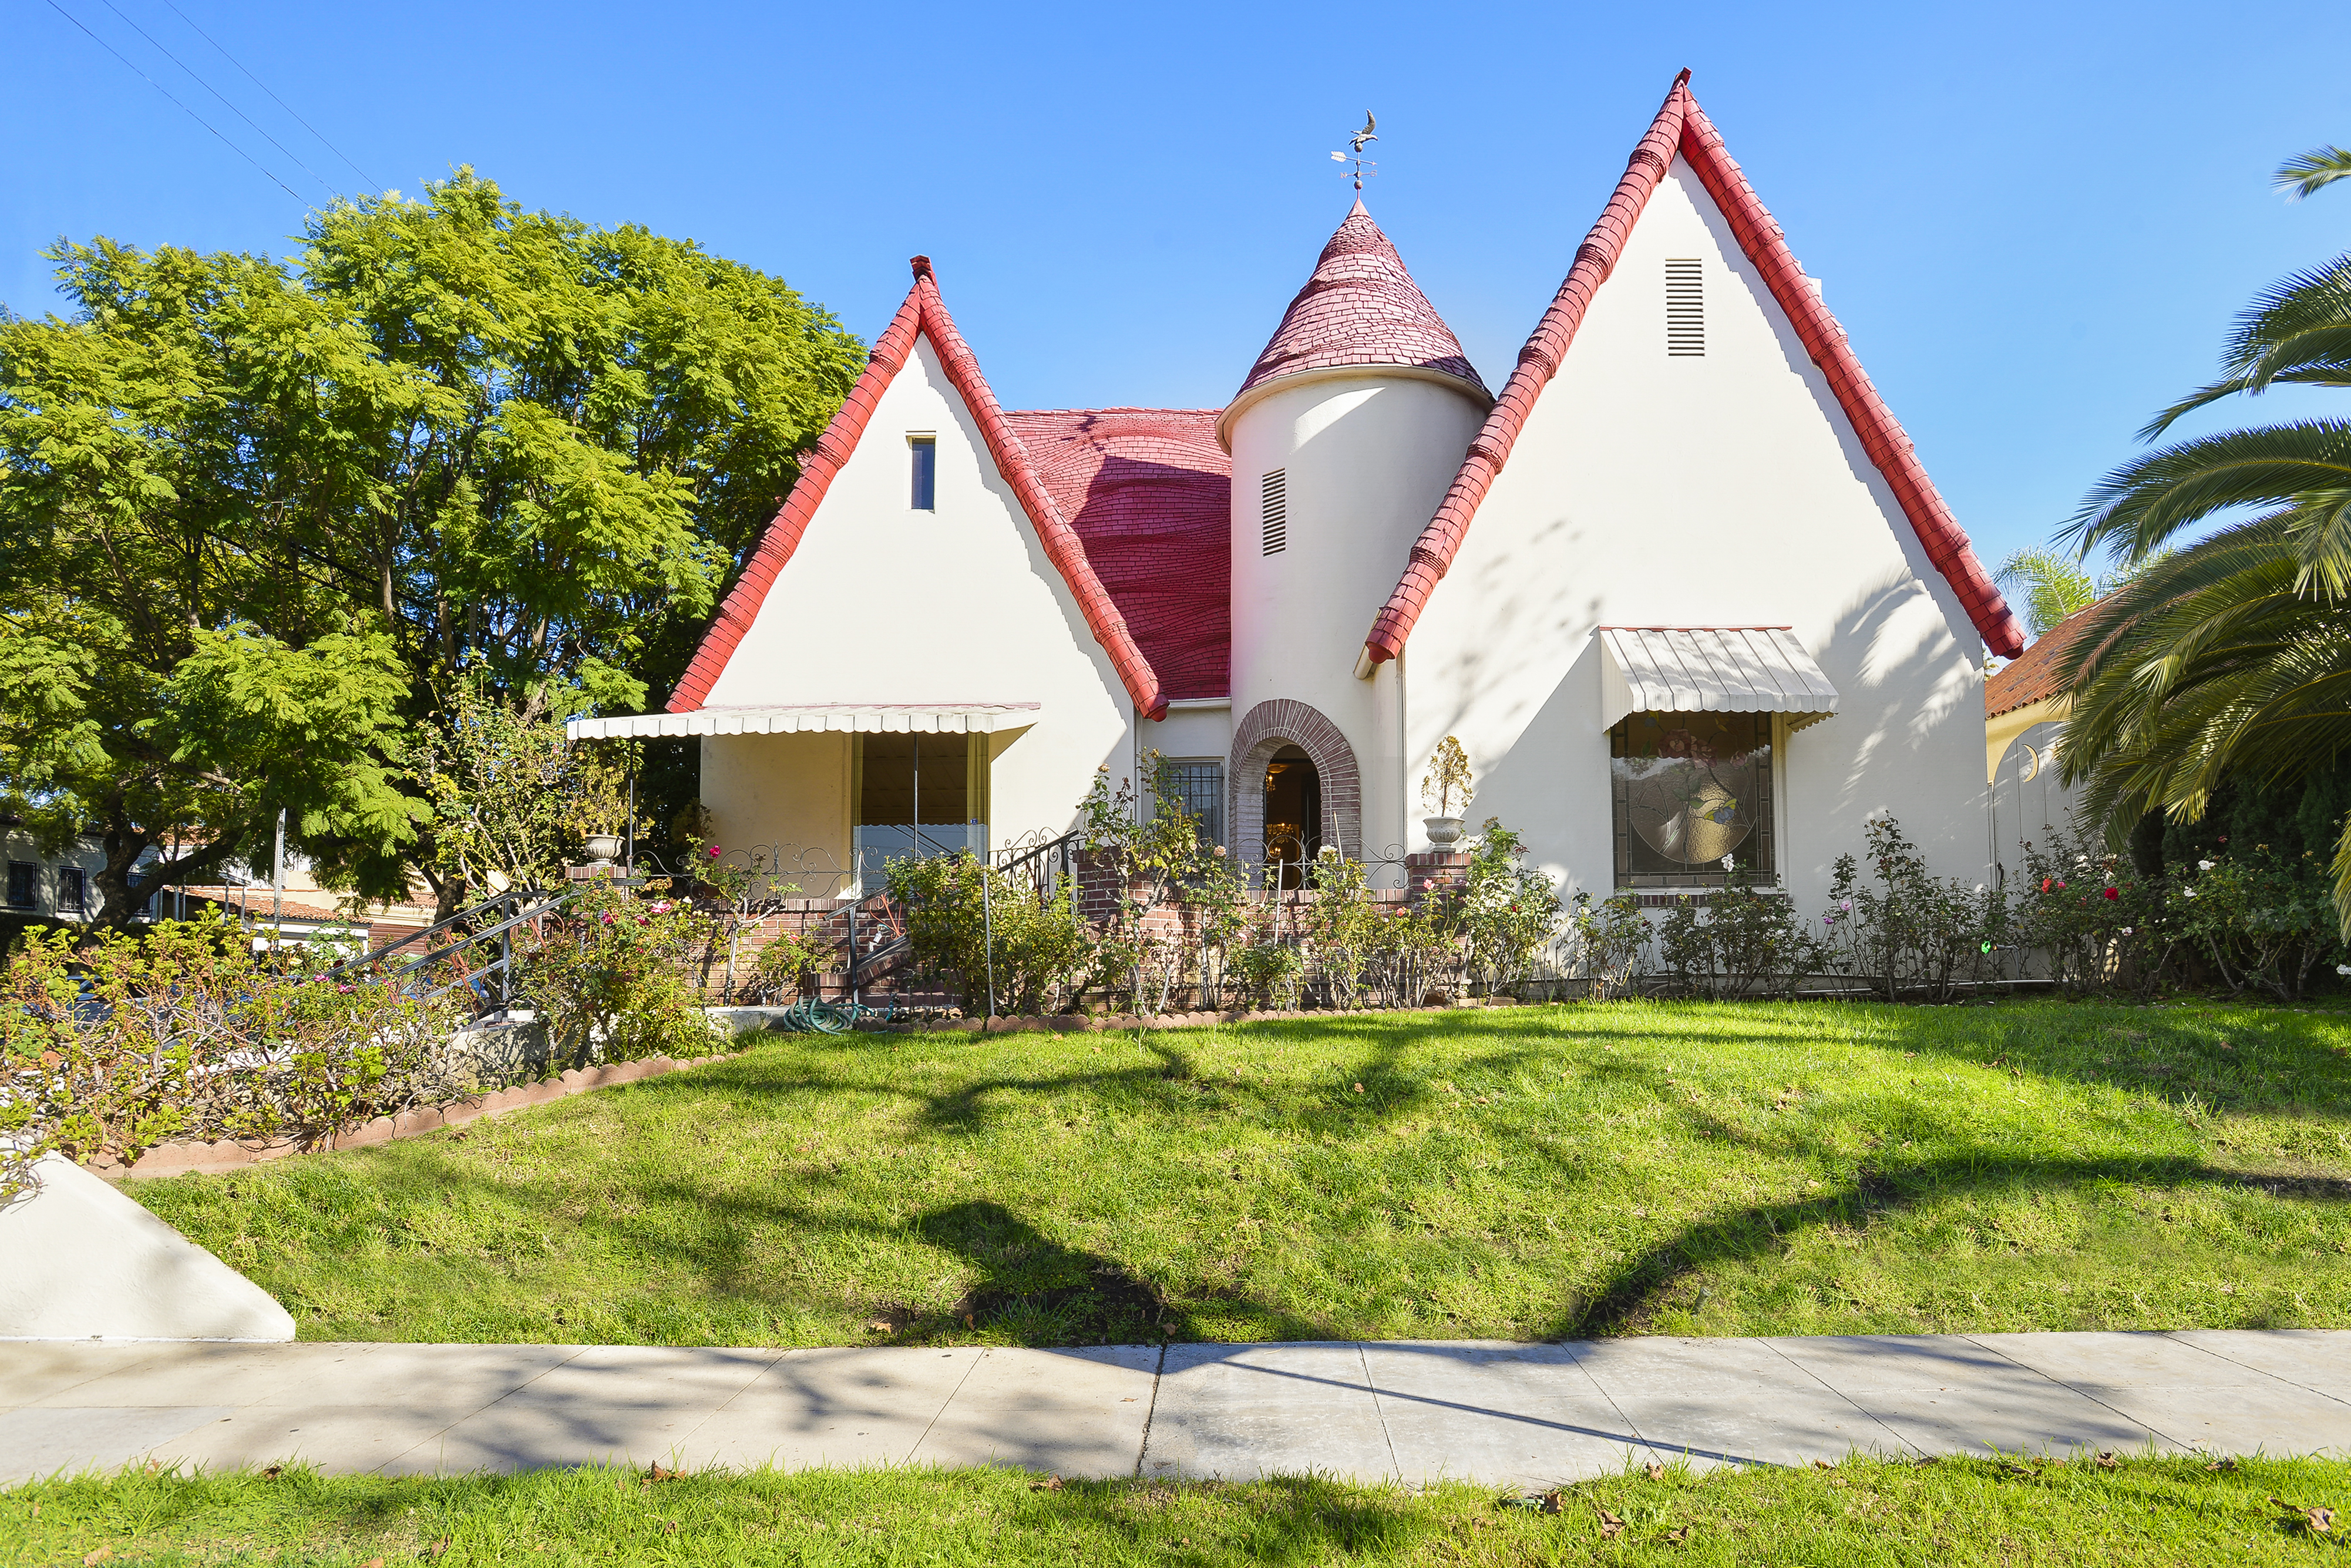 Designer deals club for hancock - Grand Storybook Style House With Period Details Asks 1 6m In Hancock Park